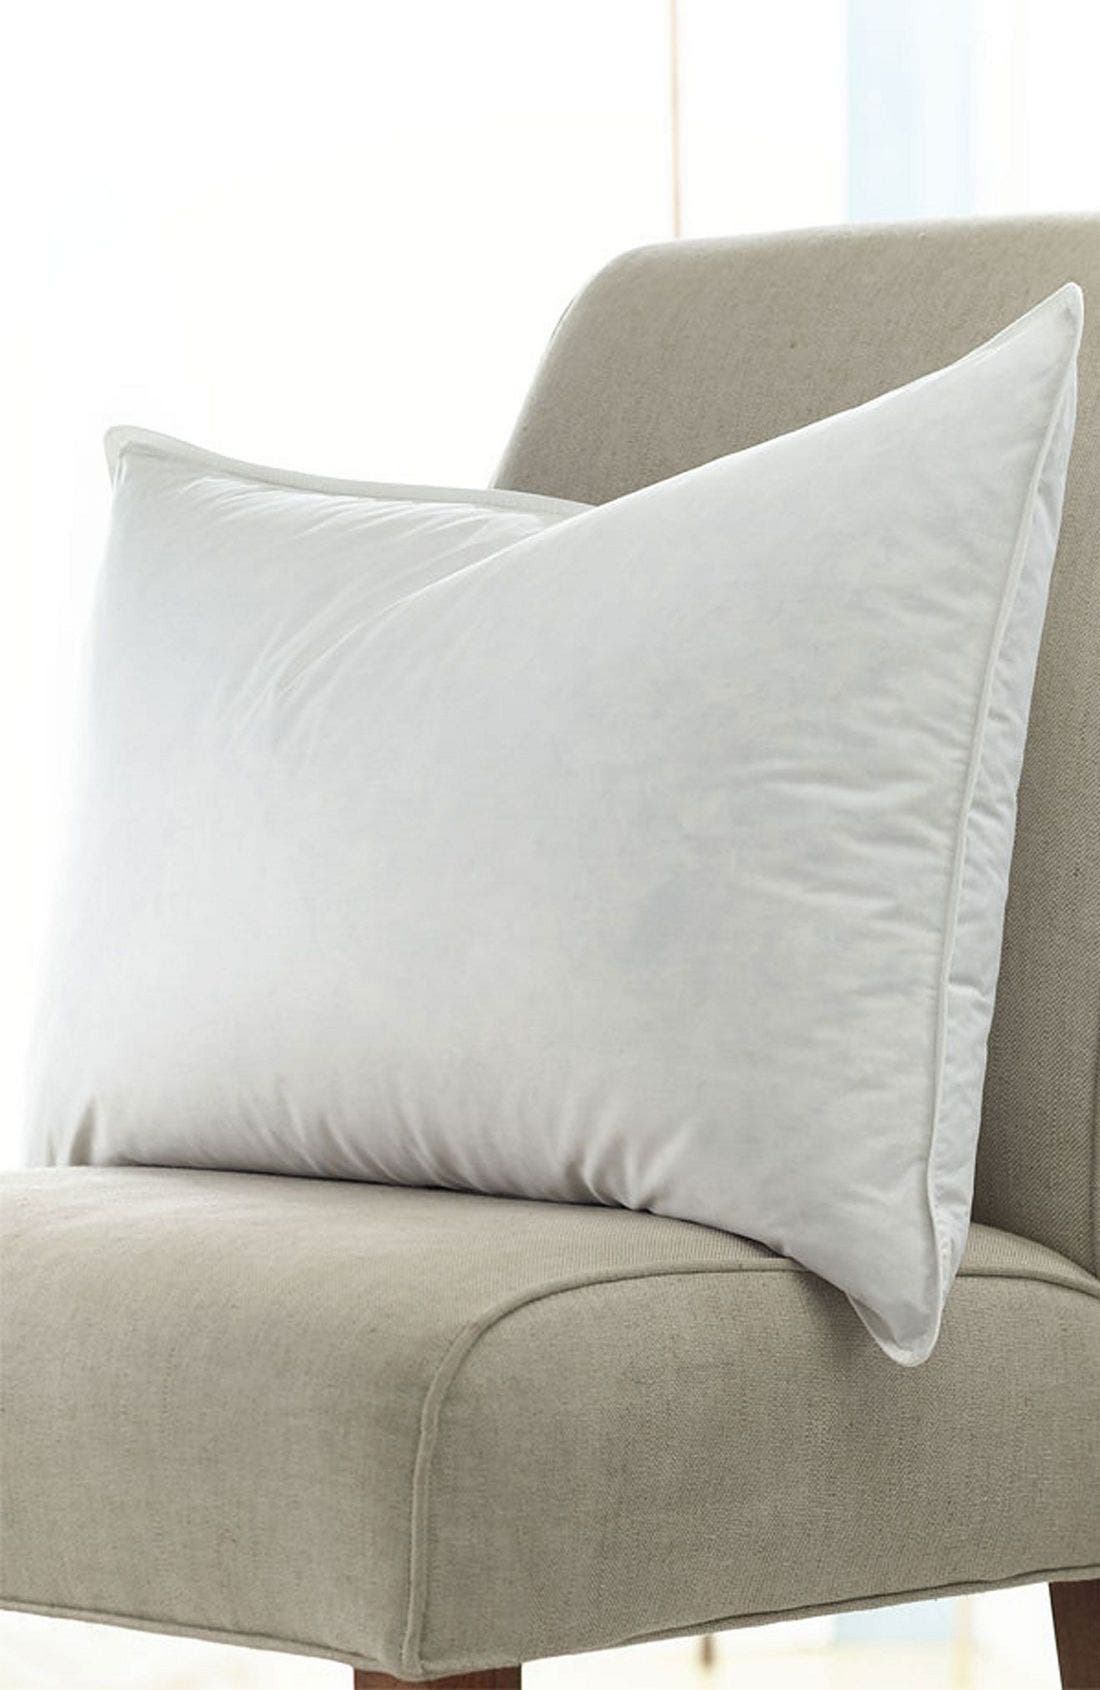 'Home Collection' Hypoallergenic Pillow,                             Alternate thumbnail 4, color,                             WHI